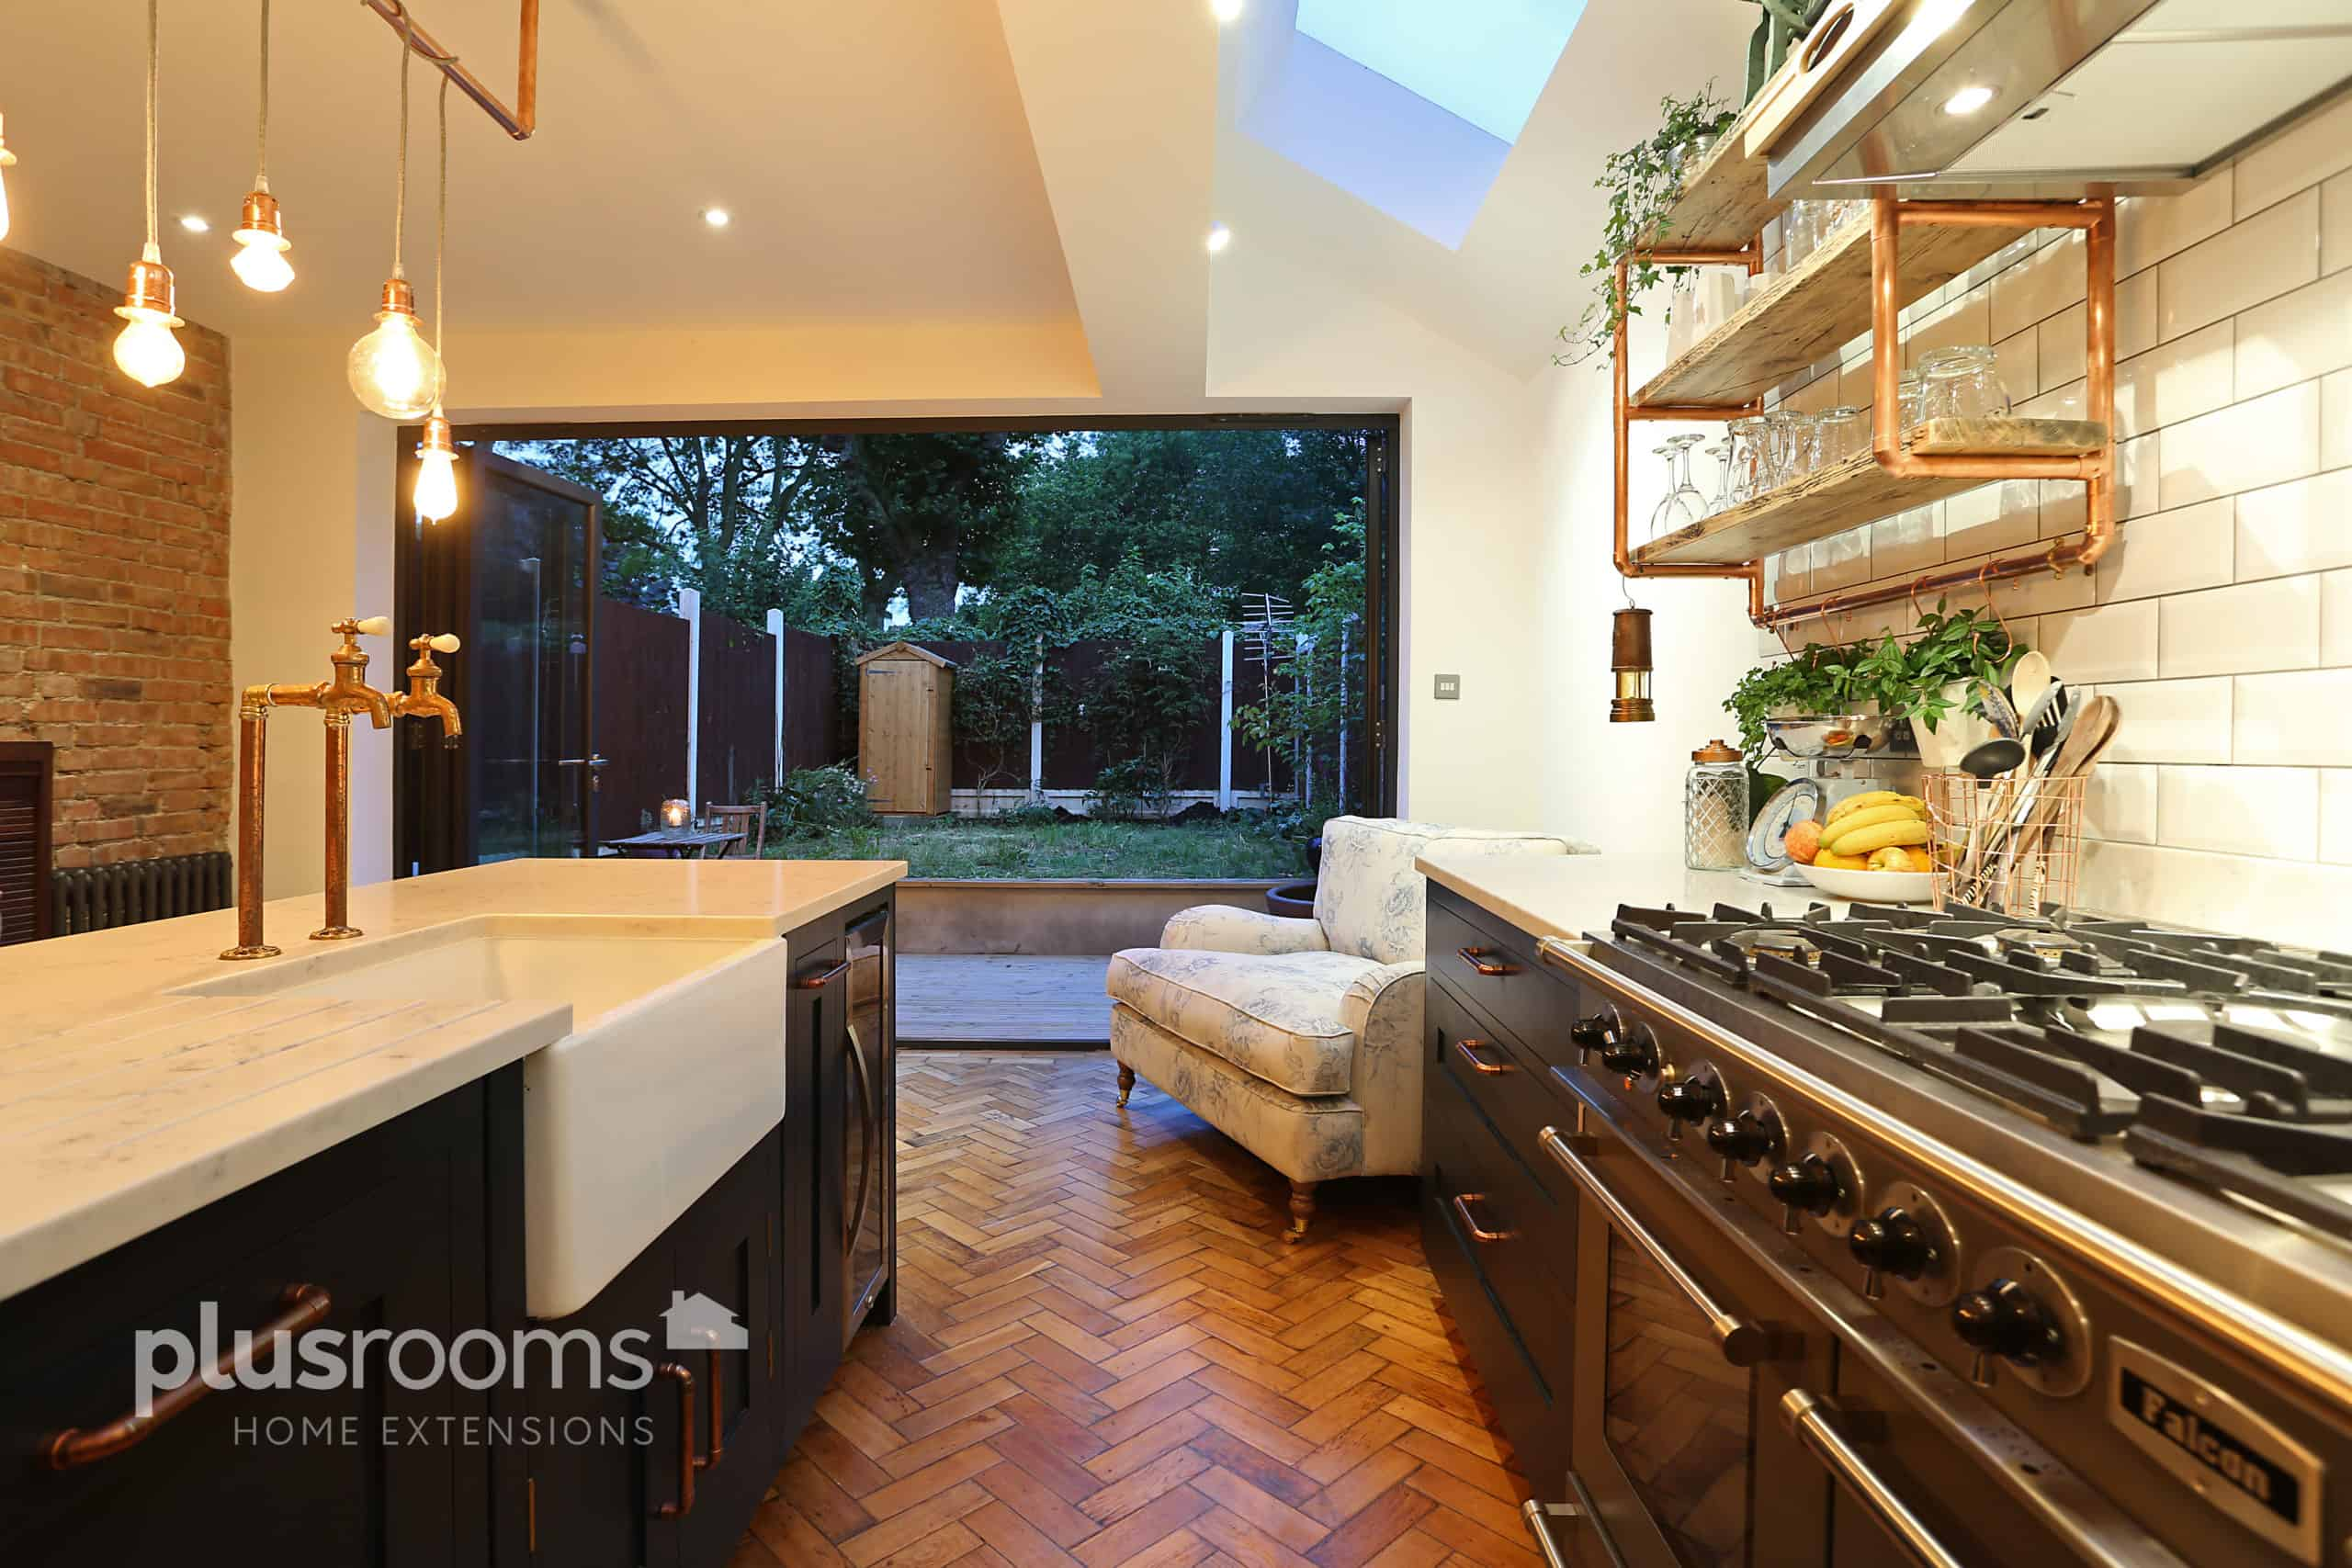 Small kitchen extension ideas: Project inspiration